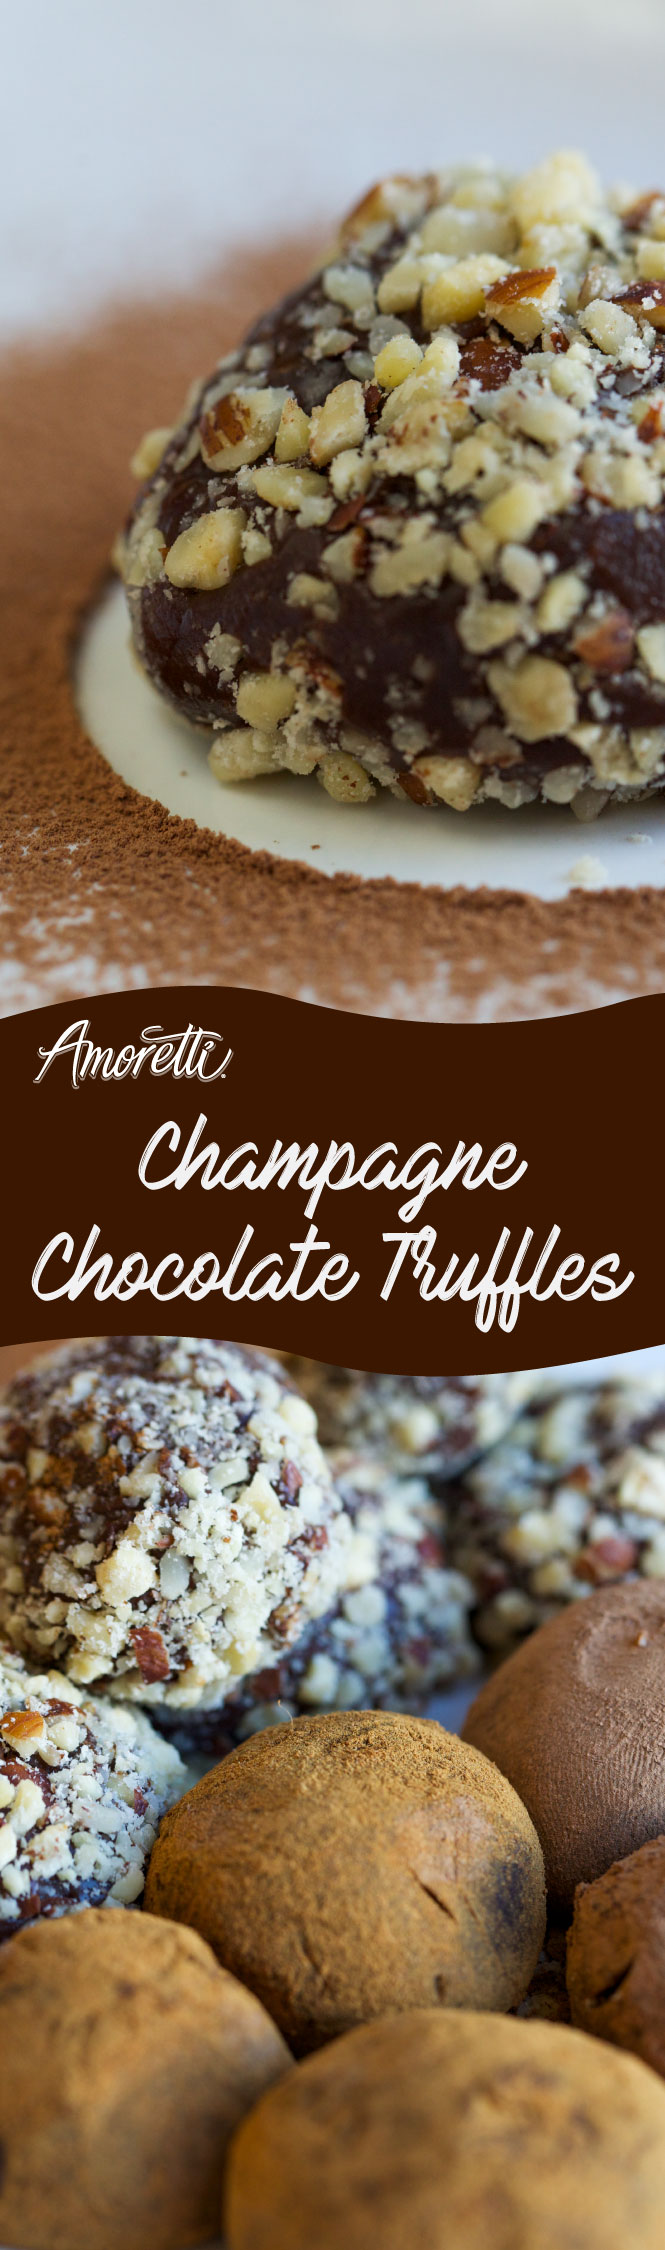 Super simple (and delicious!) chocolate champagne truffles! Made alcohol-free with Amoretti's Champagne Syrup.